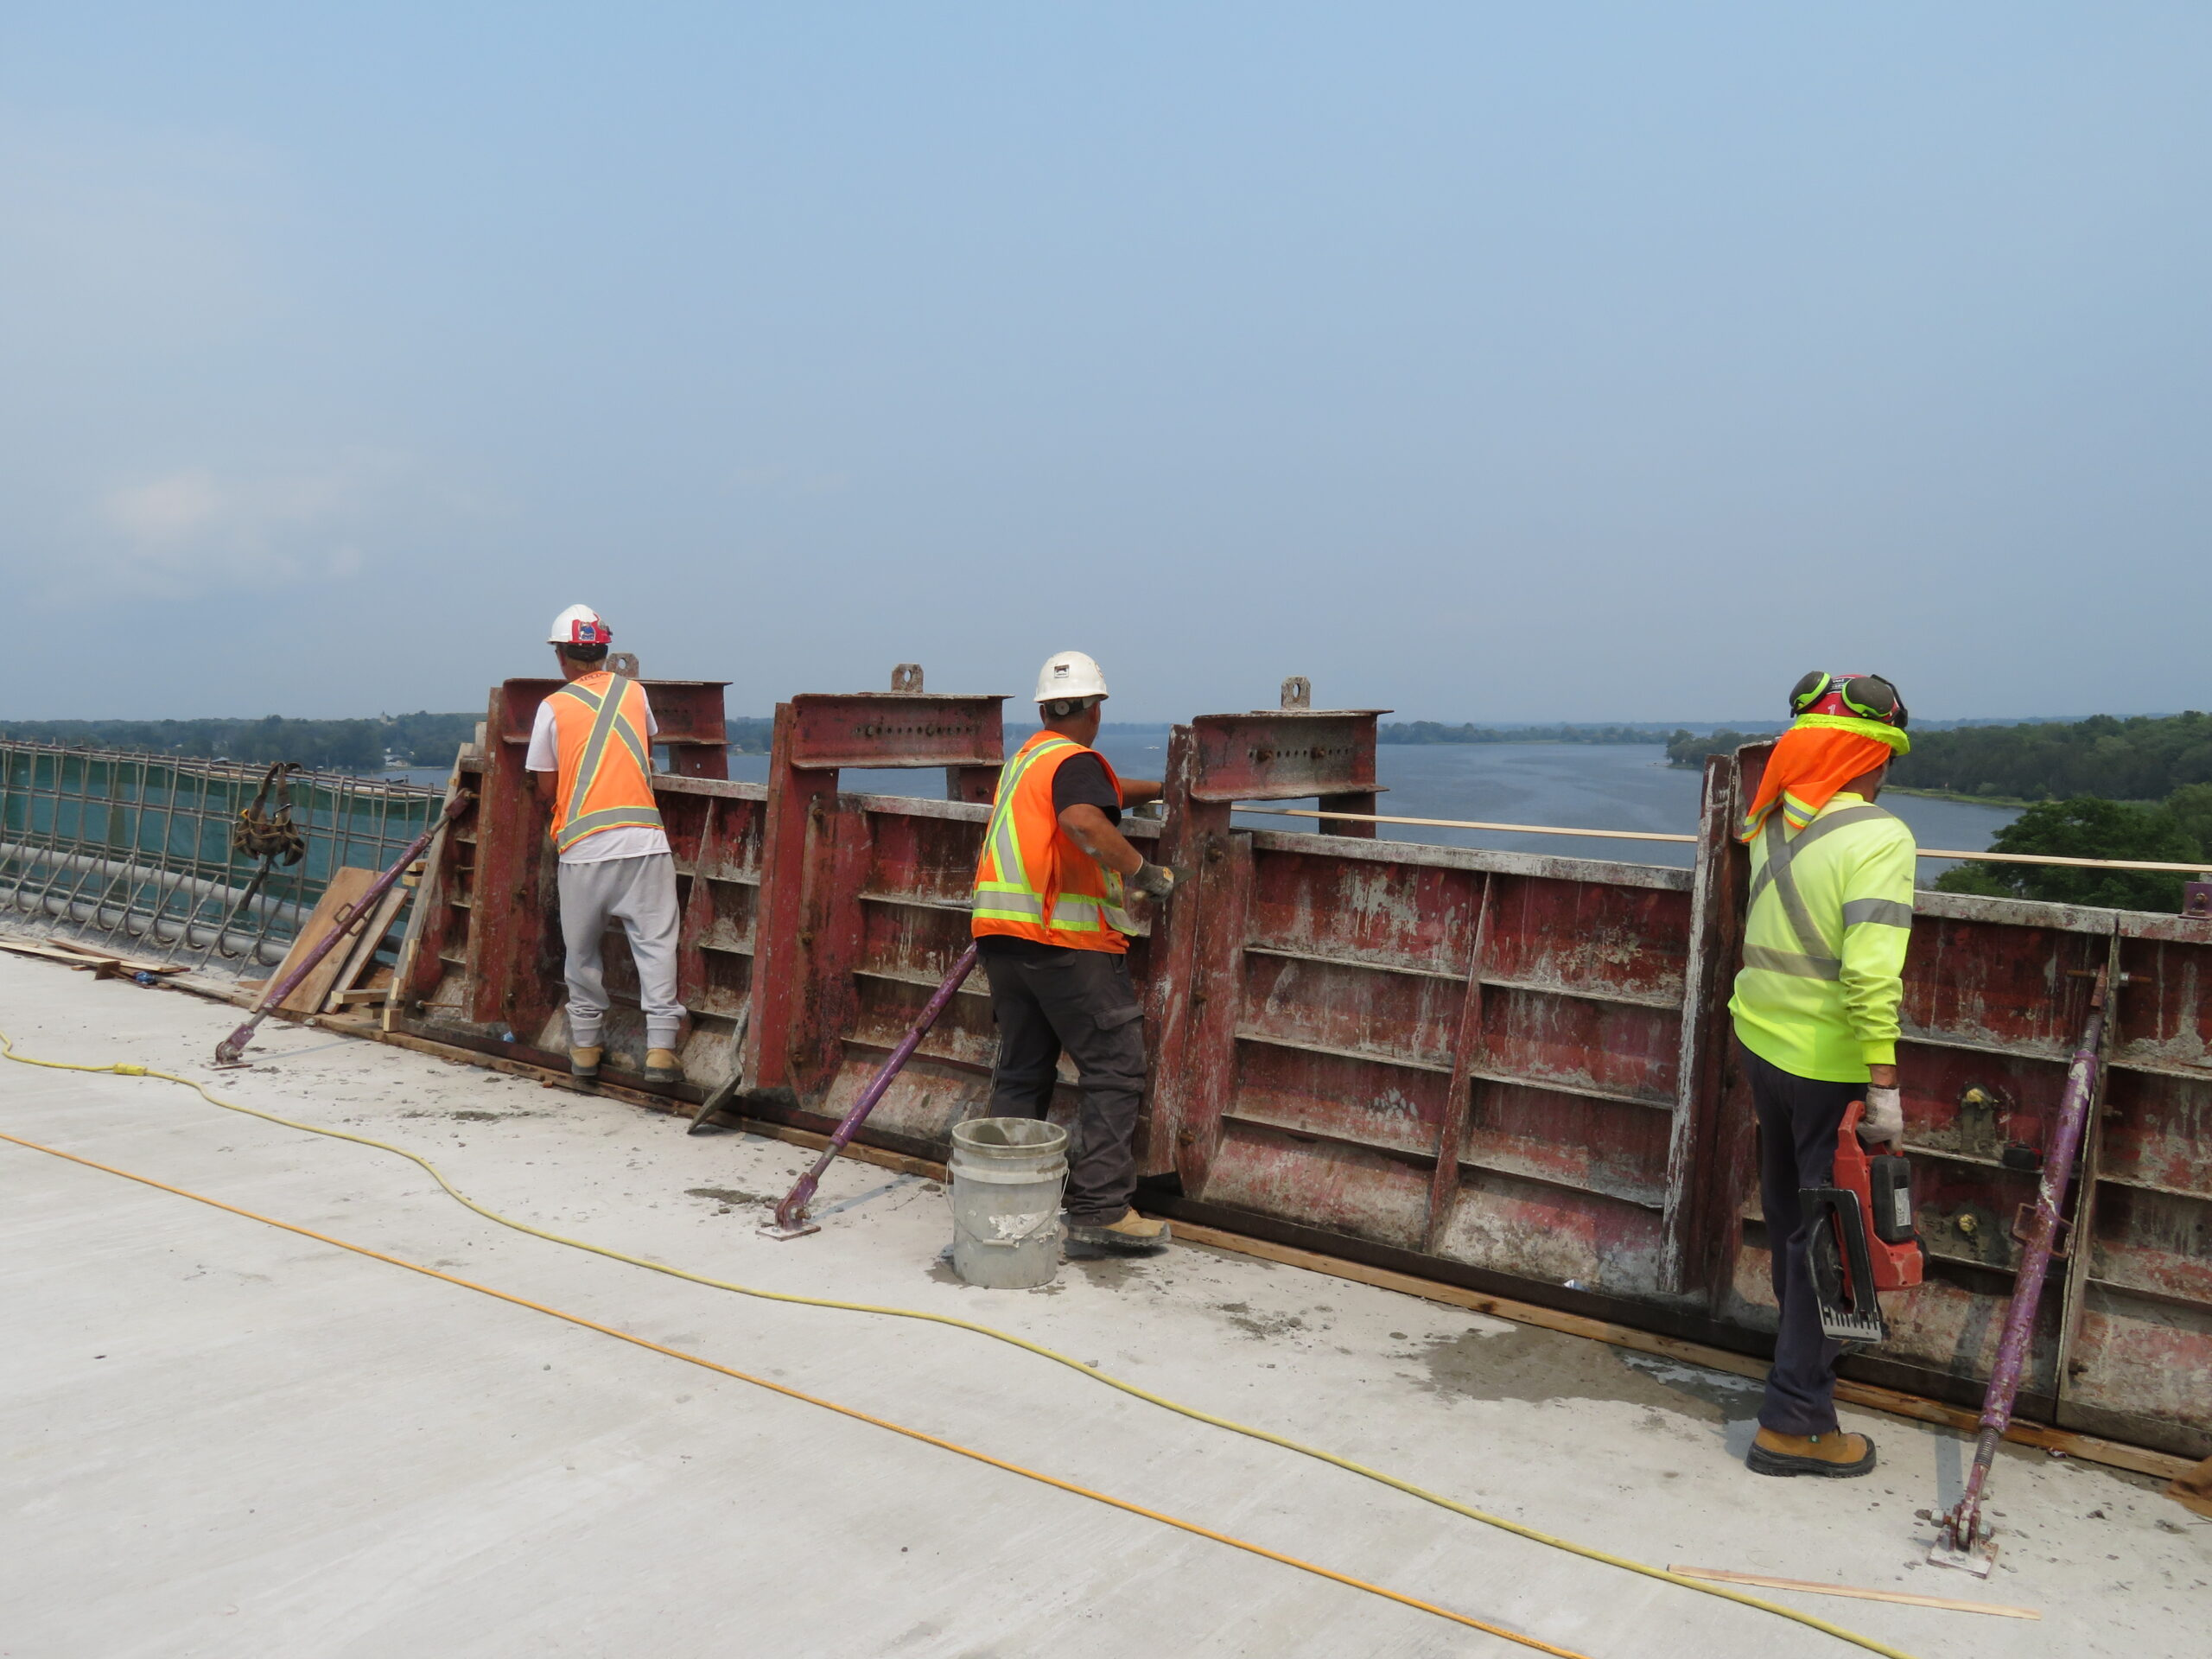 Placing the chamfer on the edges of the newly placed concrete